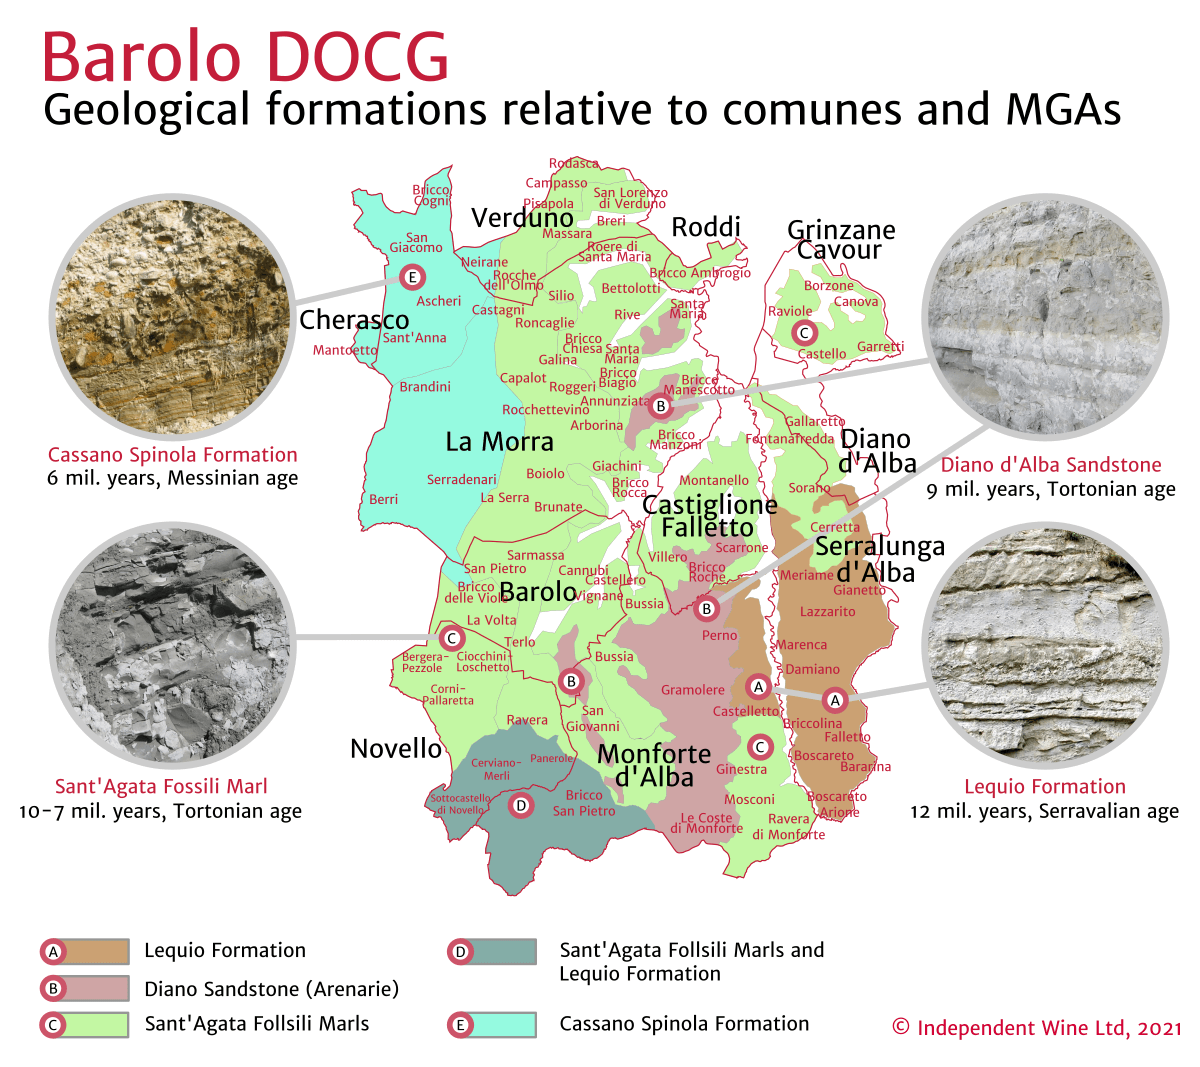 Barolo DOCG Gelogical formations relative to comunes and MGAs